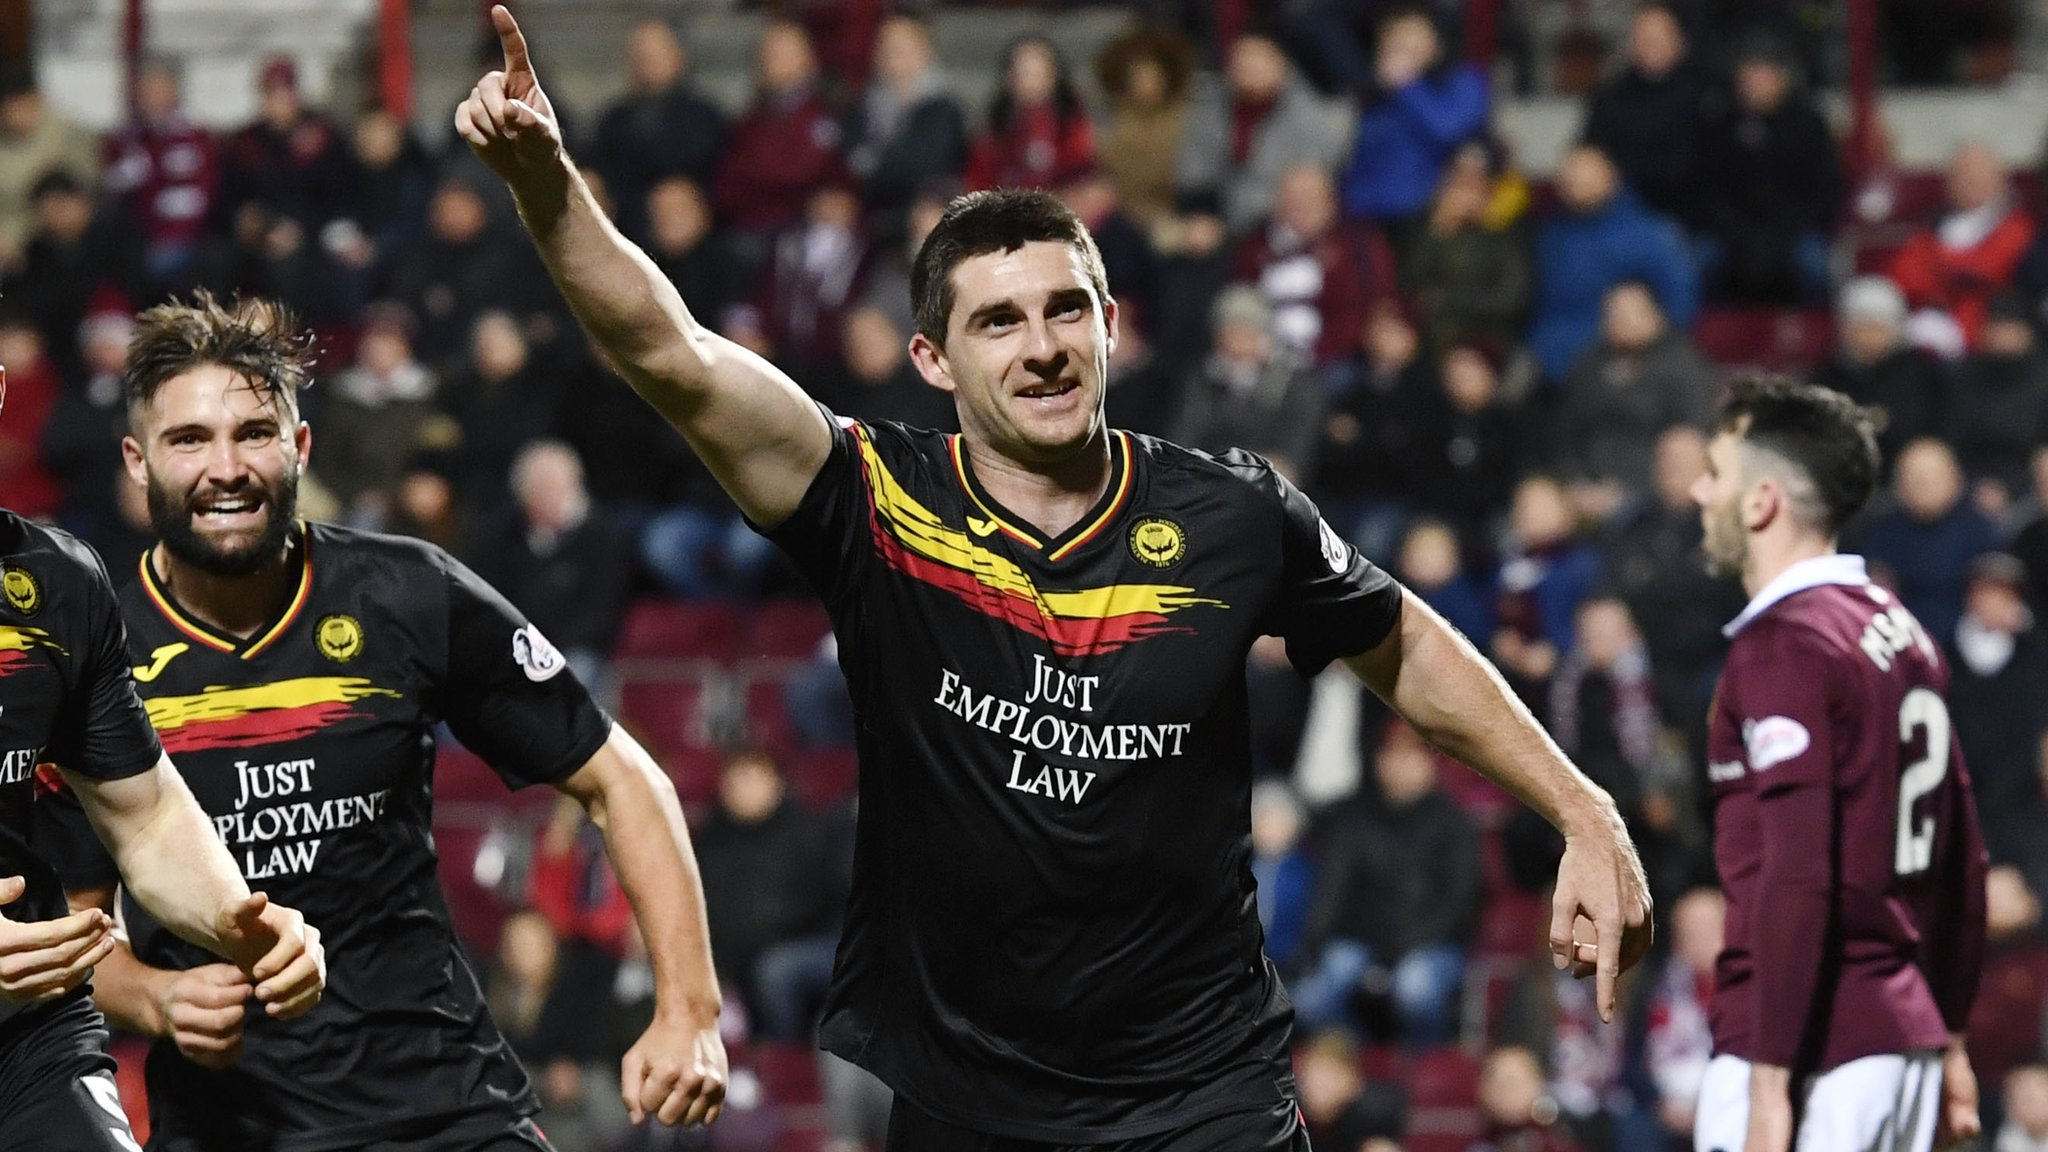 Doolan earns Partick a point at Hearts